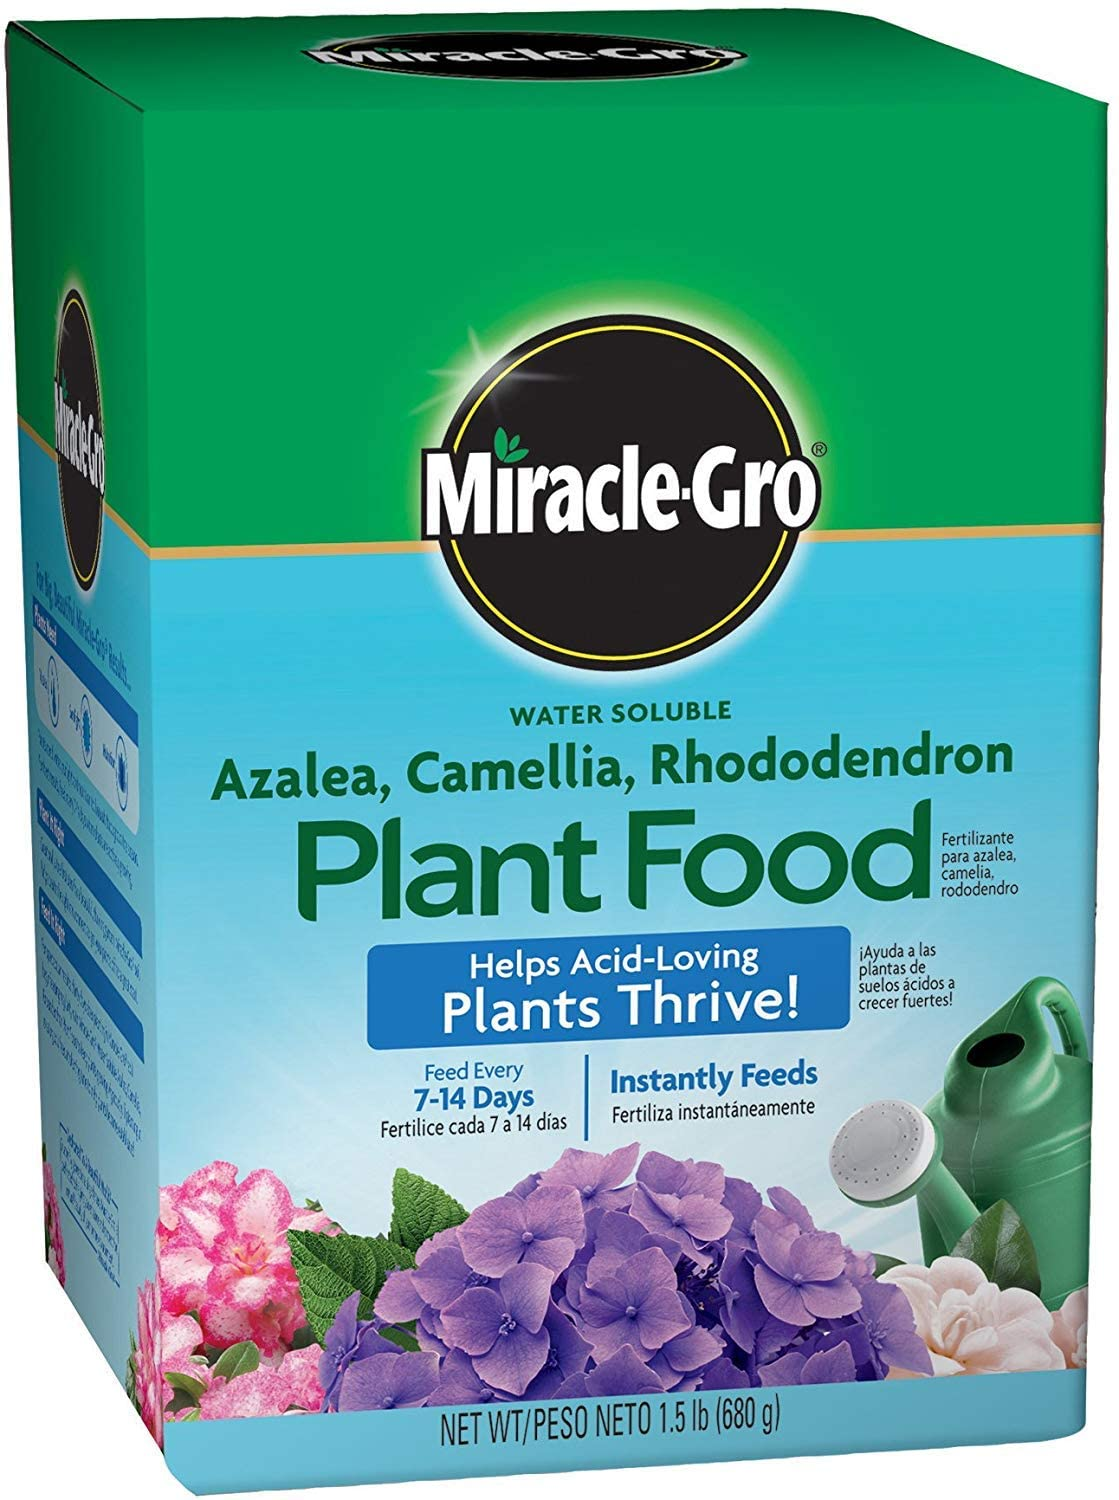 Gardenia fertilizer